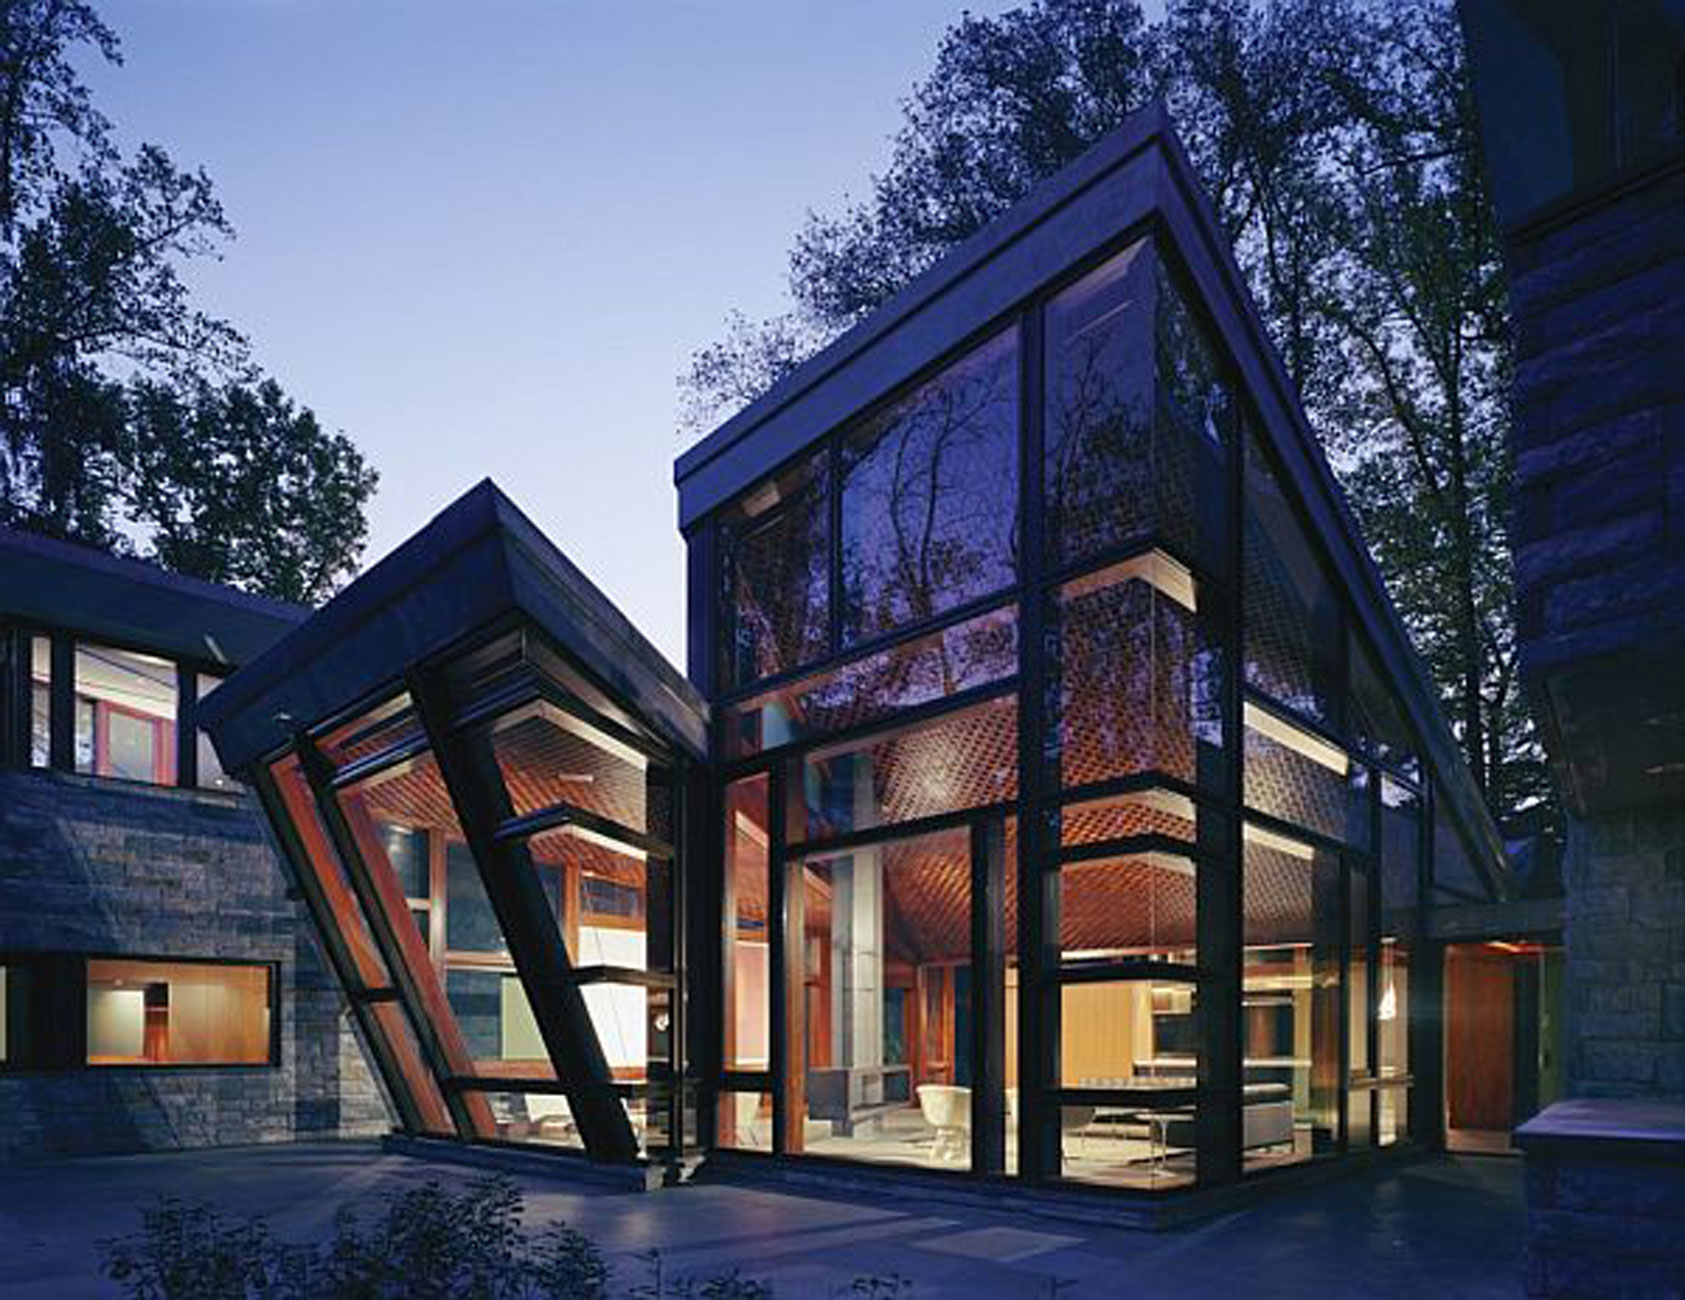 Sunday evening art gallery blog glass houses humoring for Beautiful modern house designs